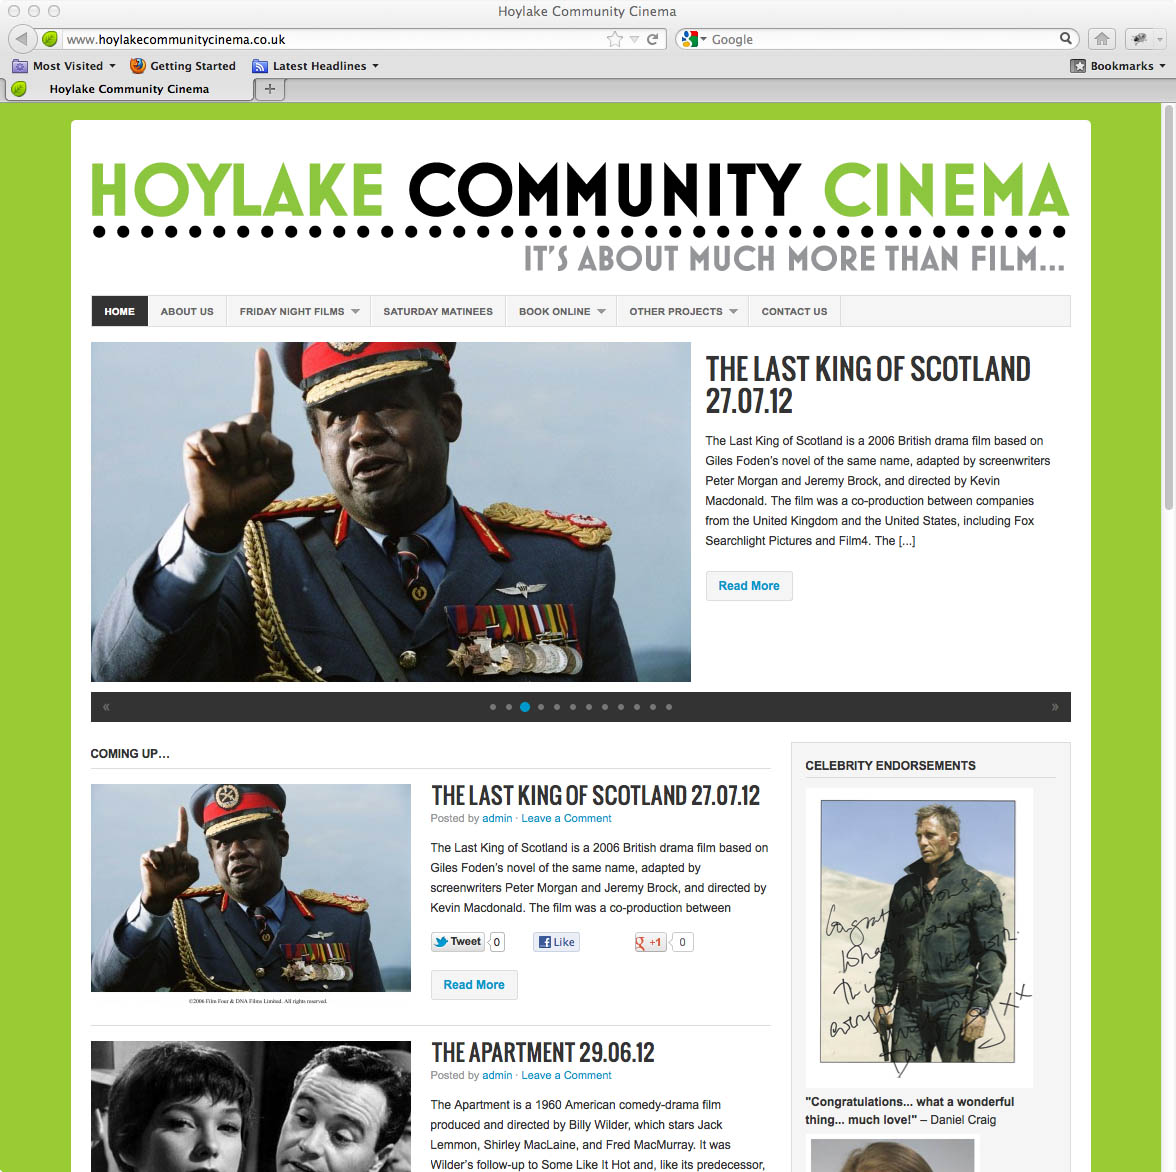 Hoylake Community Cinema